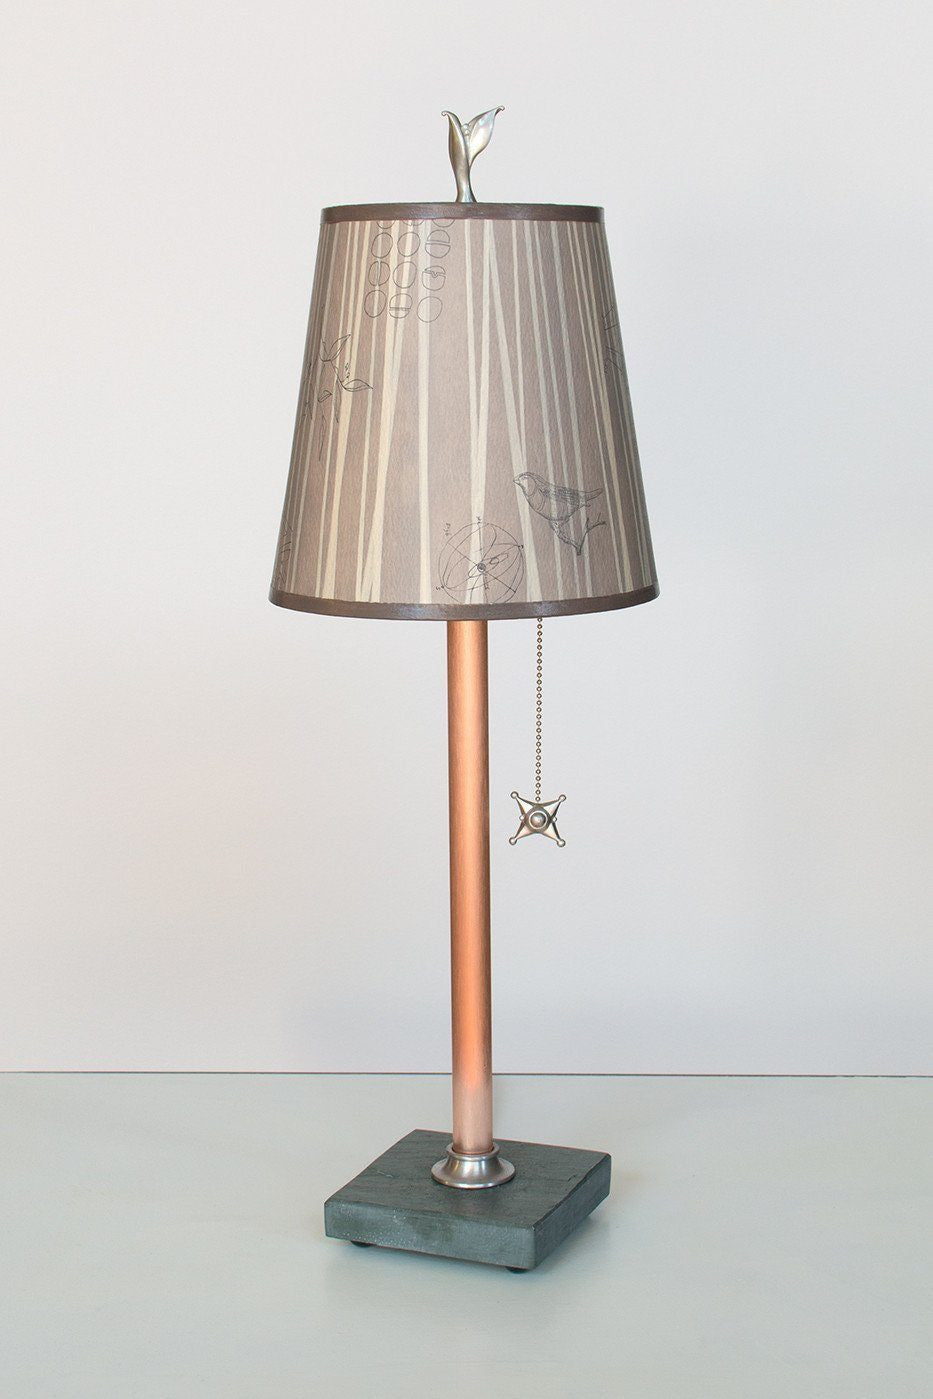 Copper Table Lamp On Vermont Slate Base With Small Drum Shade In Birch